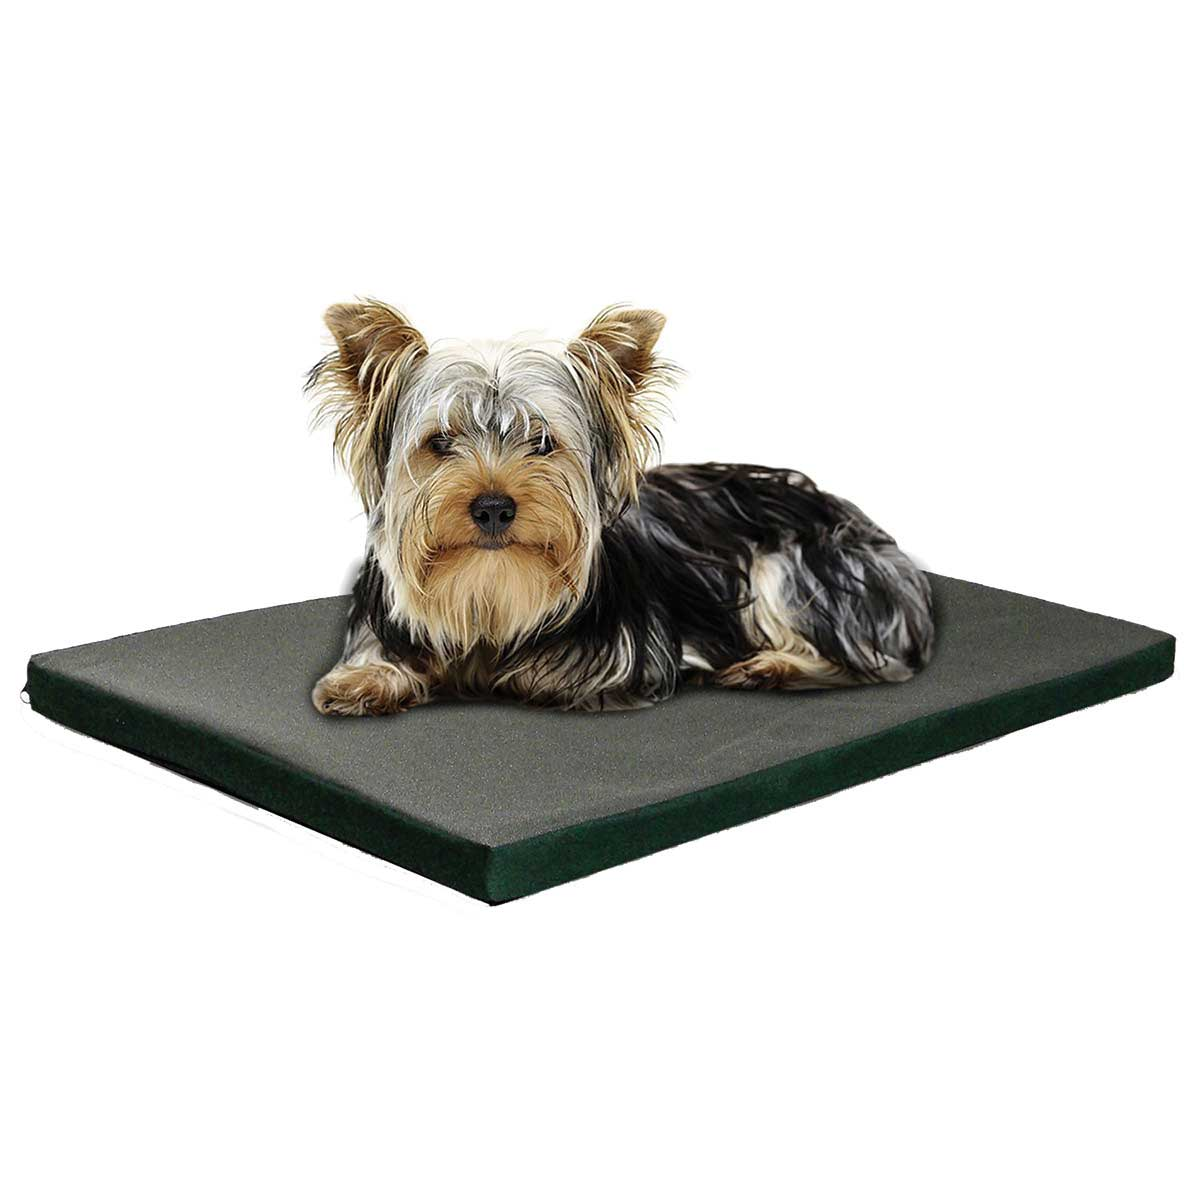 Cute Pup on FurHaven Nap Kennel Pad - 27 inches by 20 inches